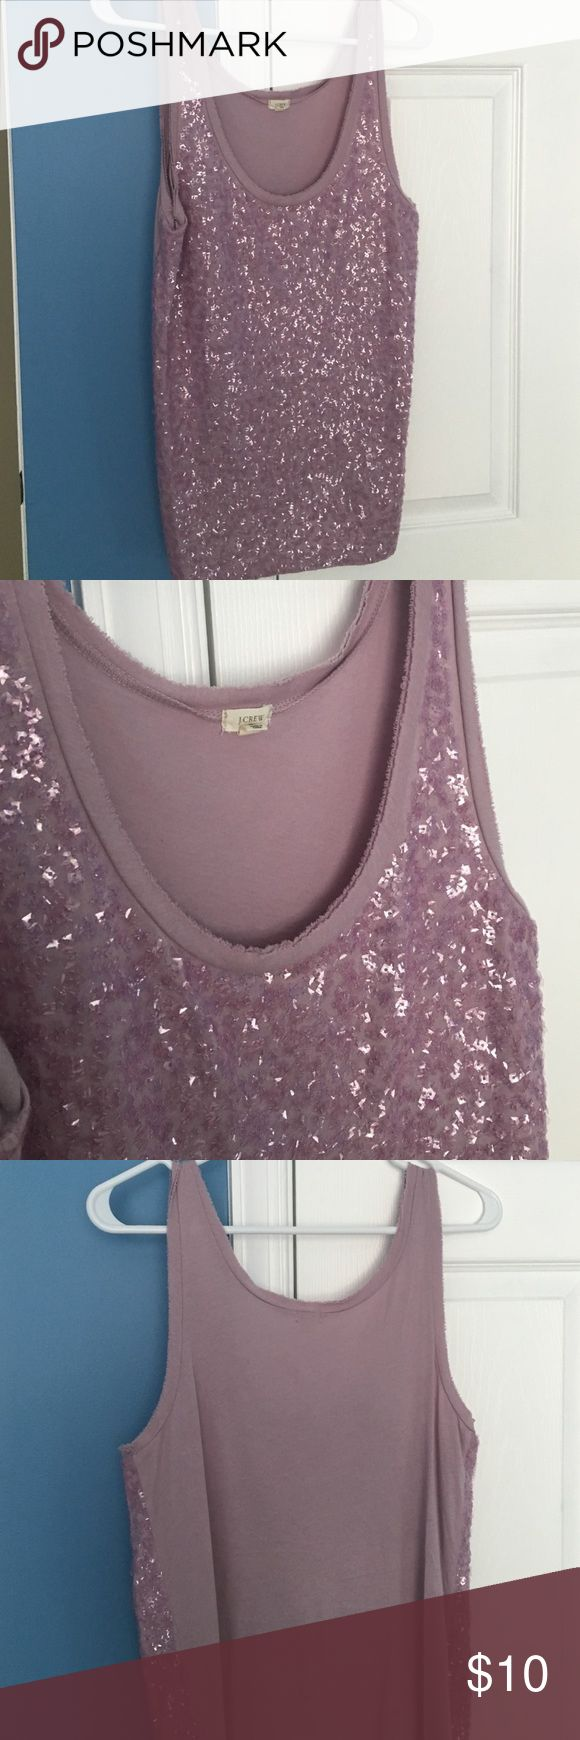 Jcrew sequined jersey tank Reposhing because I just haven't worn it much...I feel too old for the sequin detail :) But it is the cutest  scoop neck cotton tank in lavender with frayed edge style on neck and arms and square sequins. Very good condition fits loose so would be good for 6-8 J. Crew Tops Tank Tops